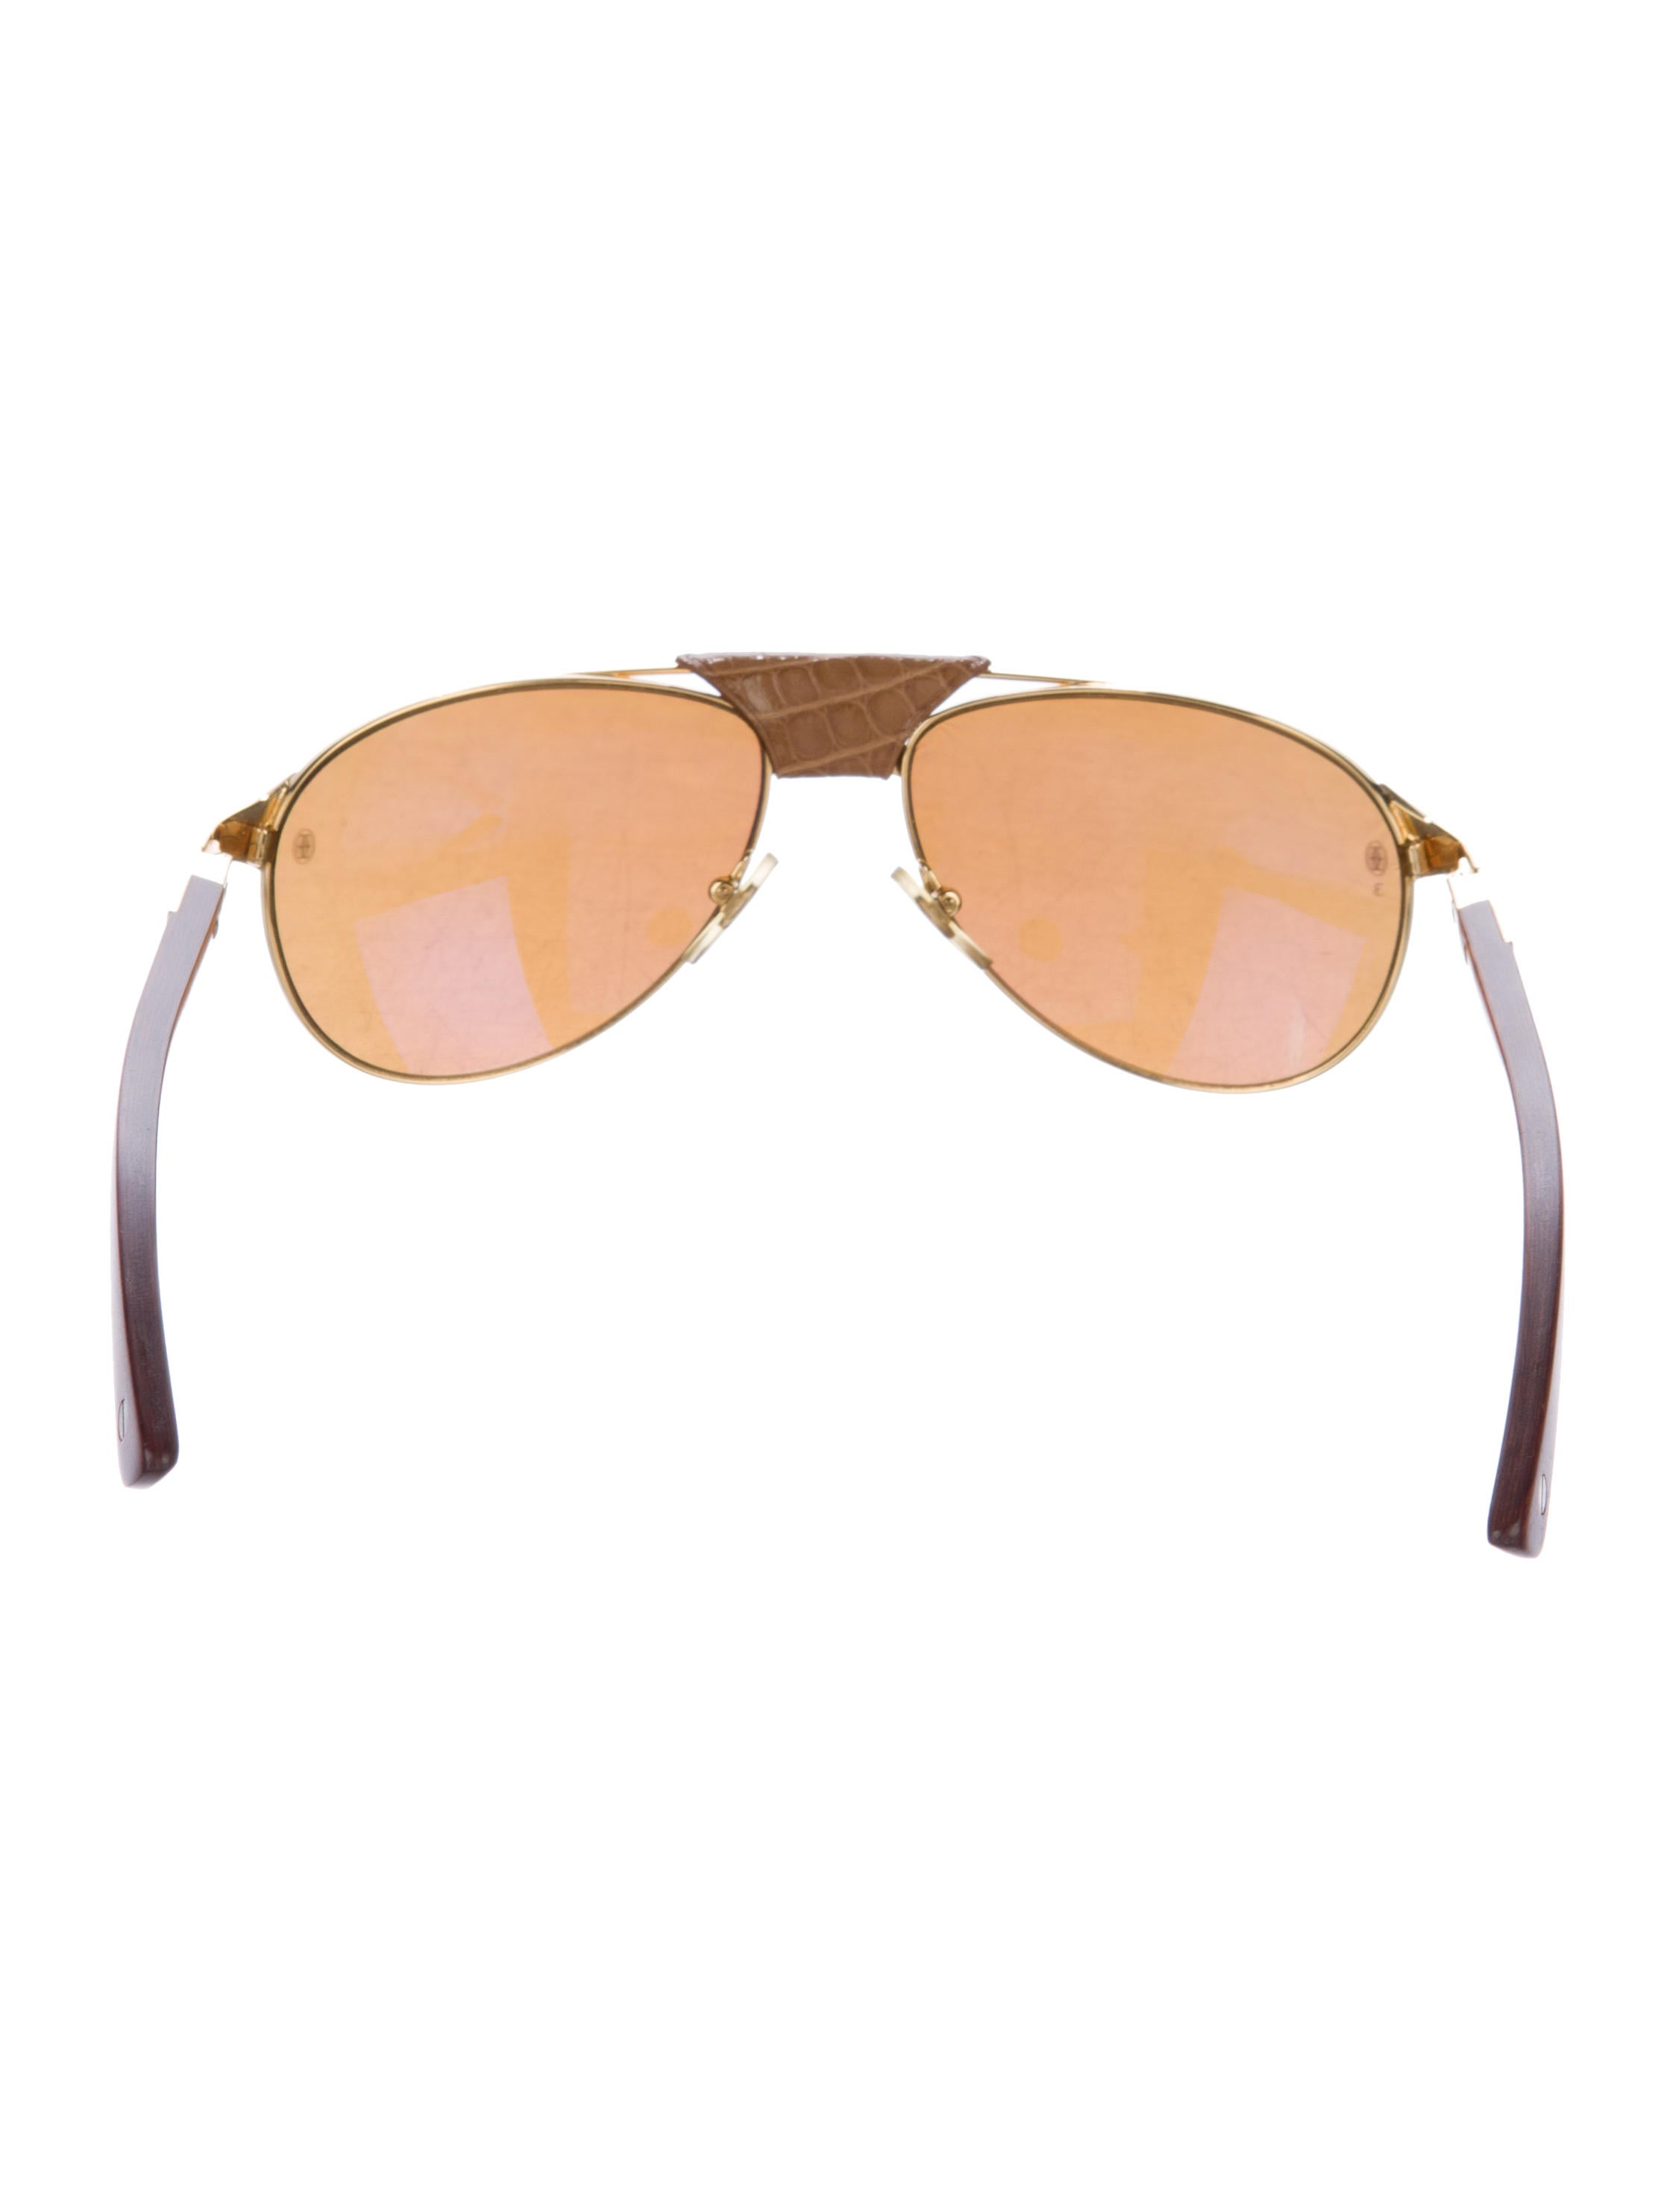 b5f786bf40 Cartier Santos Dumont Aviator Wood And Leather Sunglasses